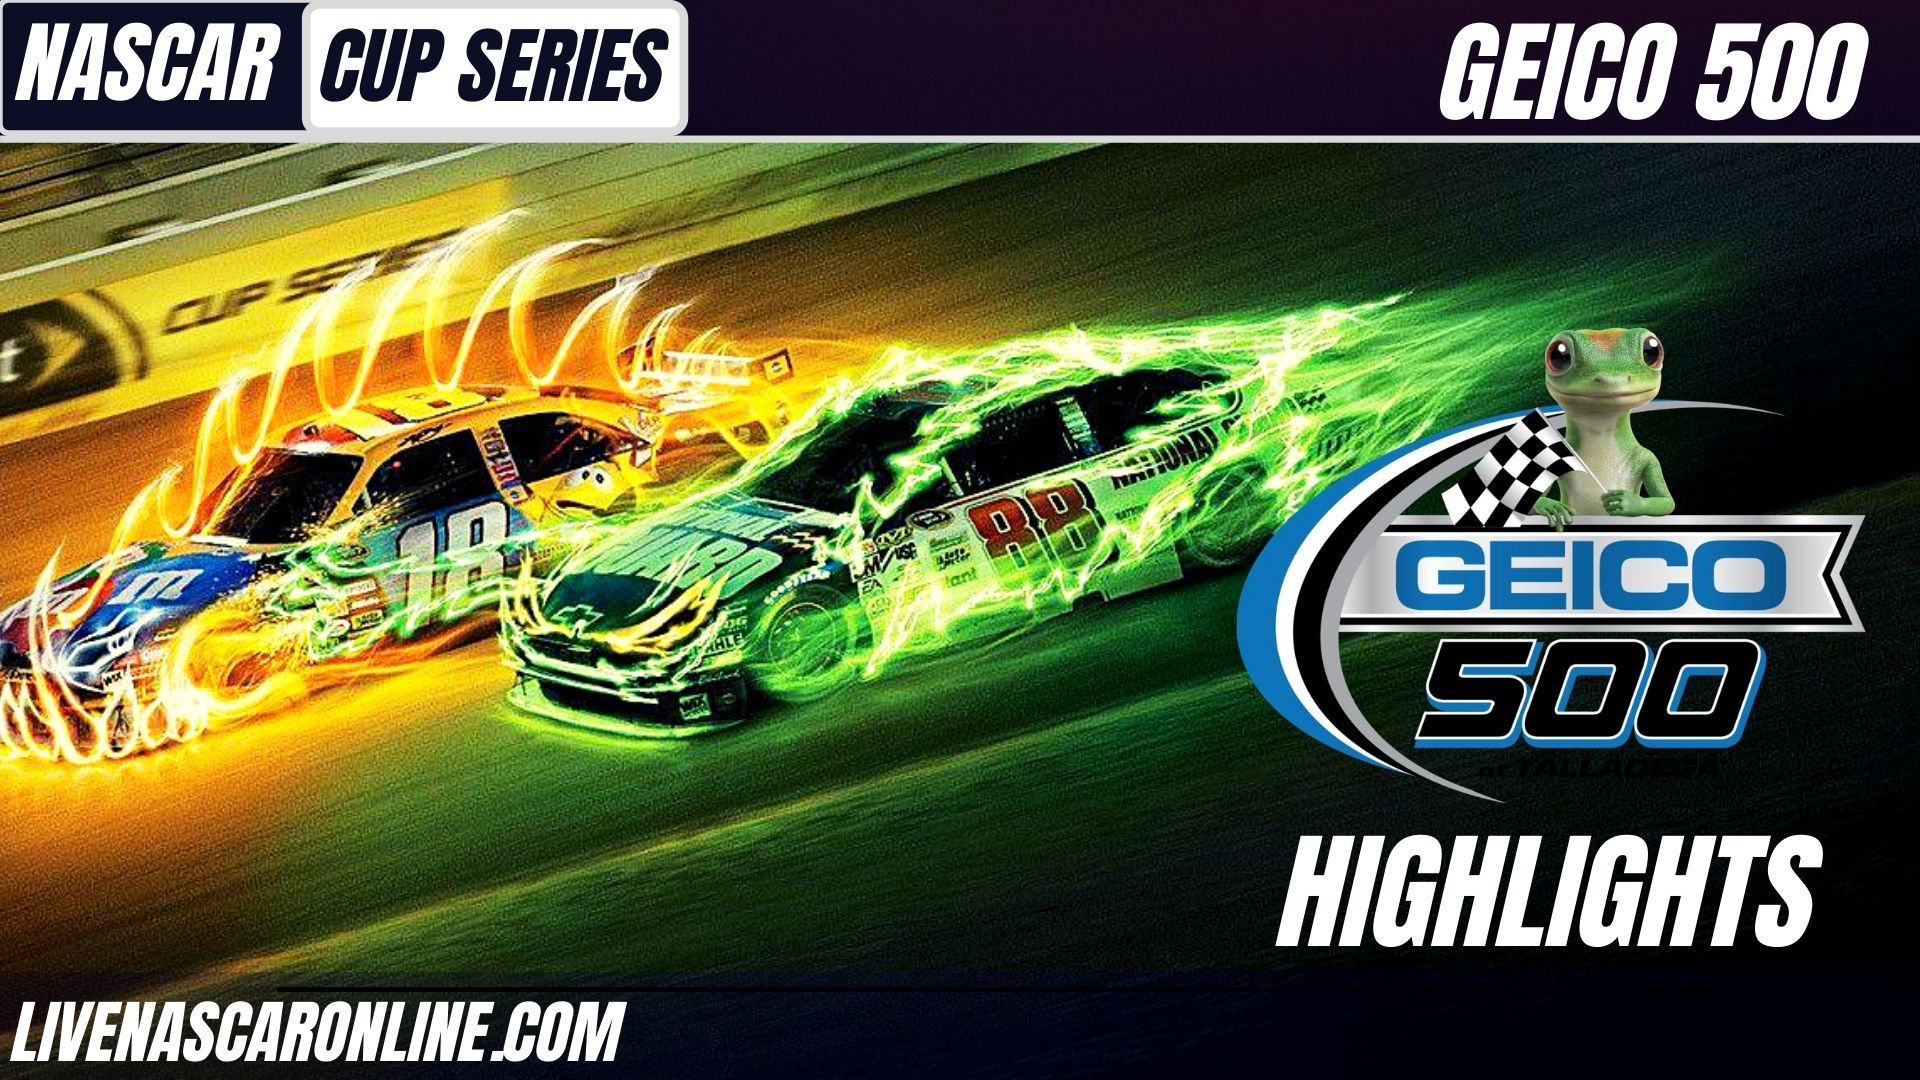 Geico 500 Highlights 2021 Nascar Cup Series